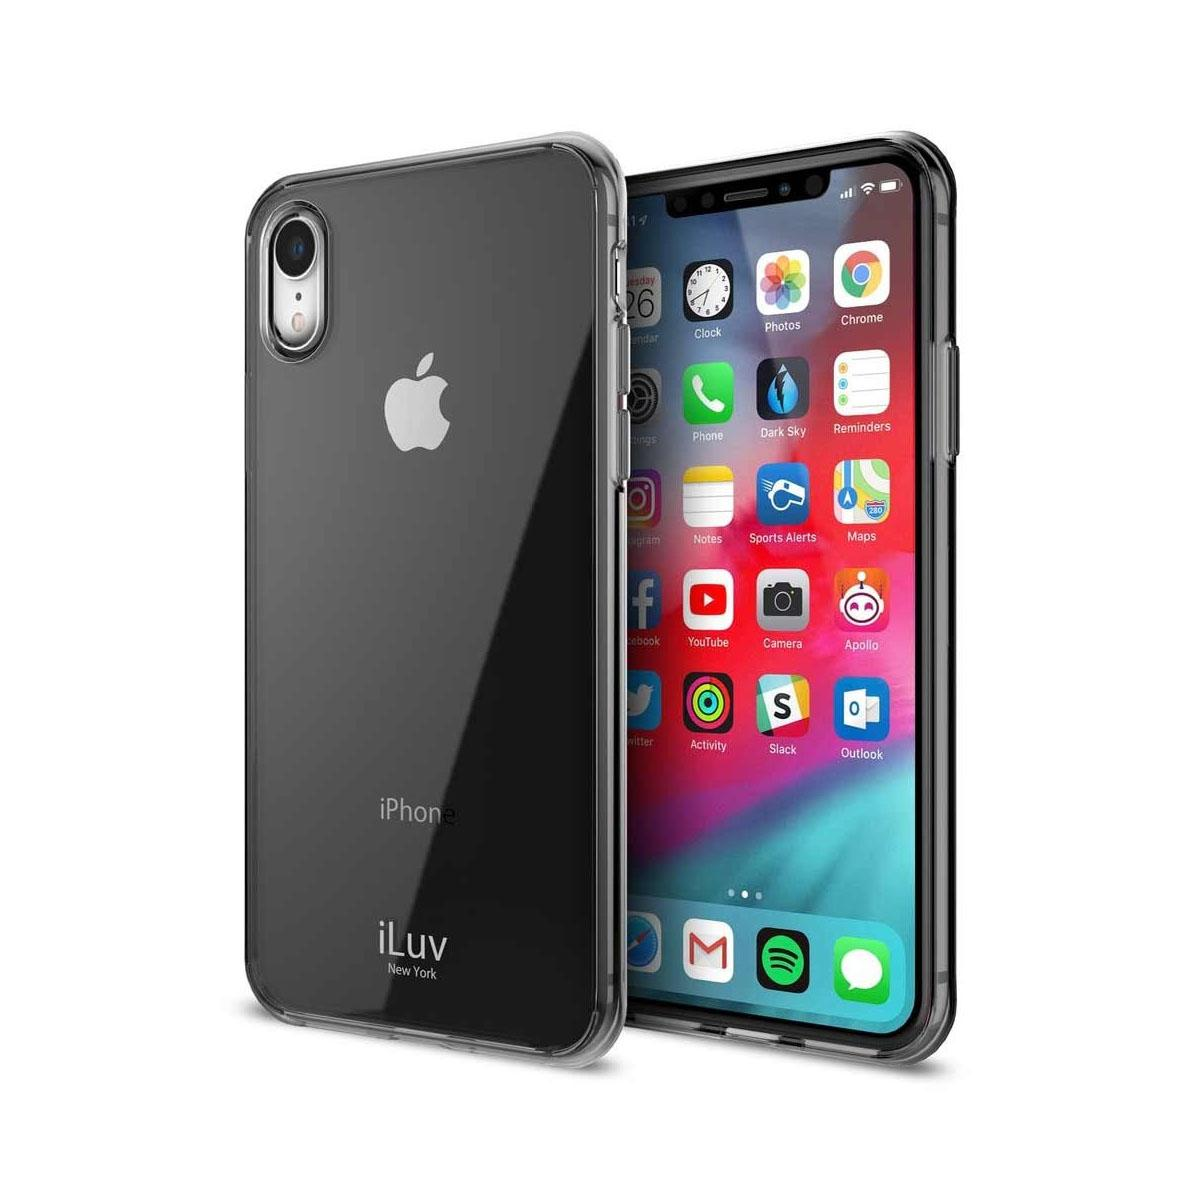 iLuv Vyneer Back Cover Case for iPhone X - Black